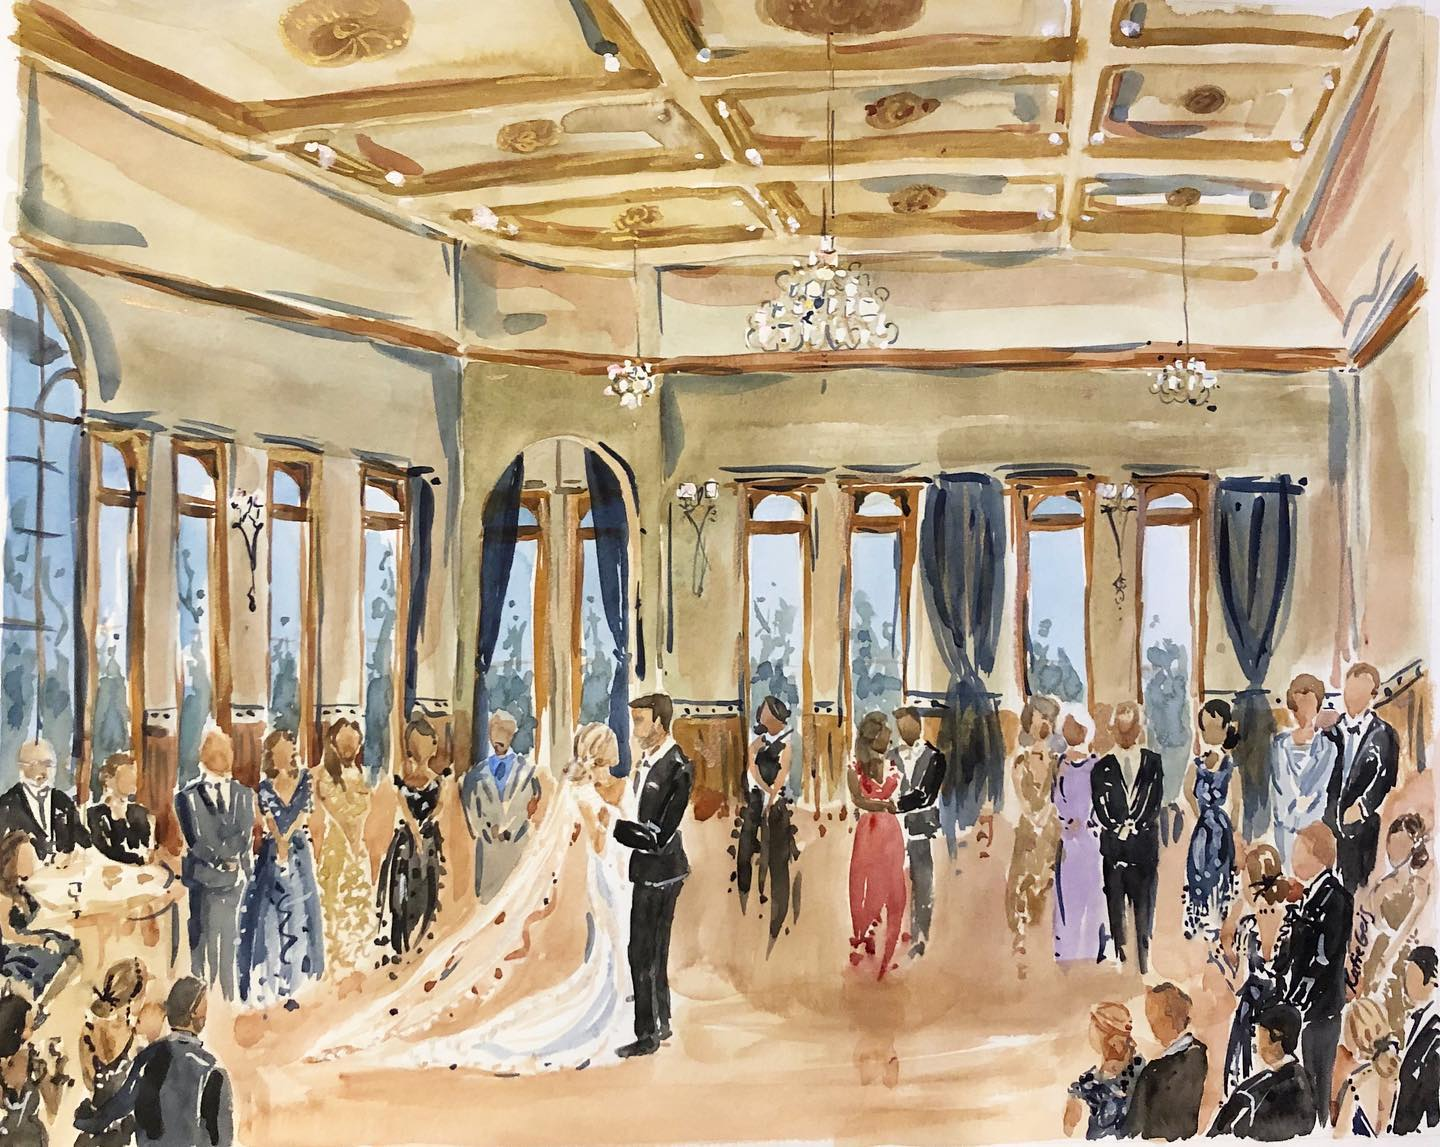 Live Event Painting by Katie Geis Historic Courthouse 1893, Waukesha, Wisconsin